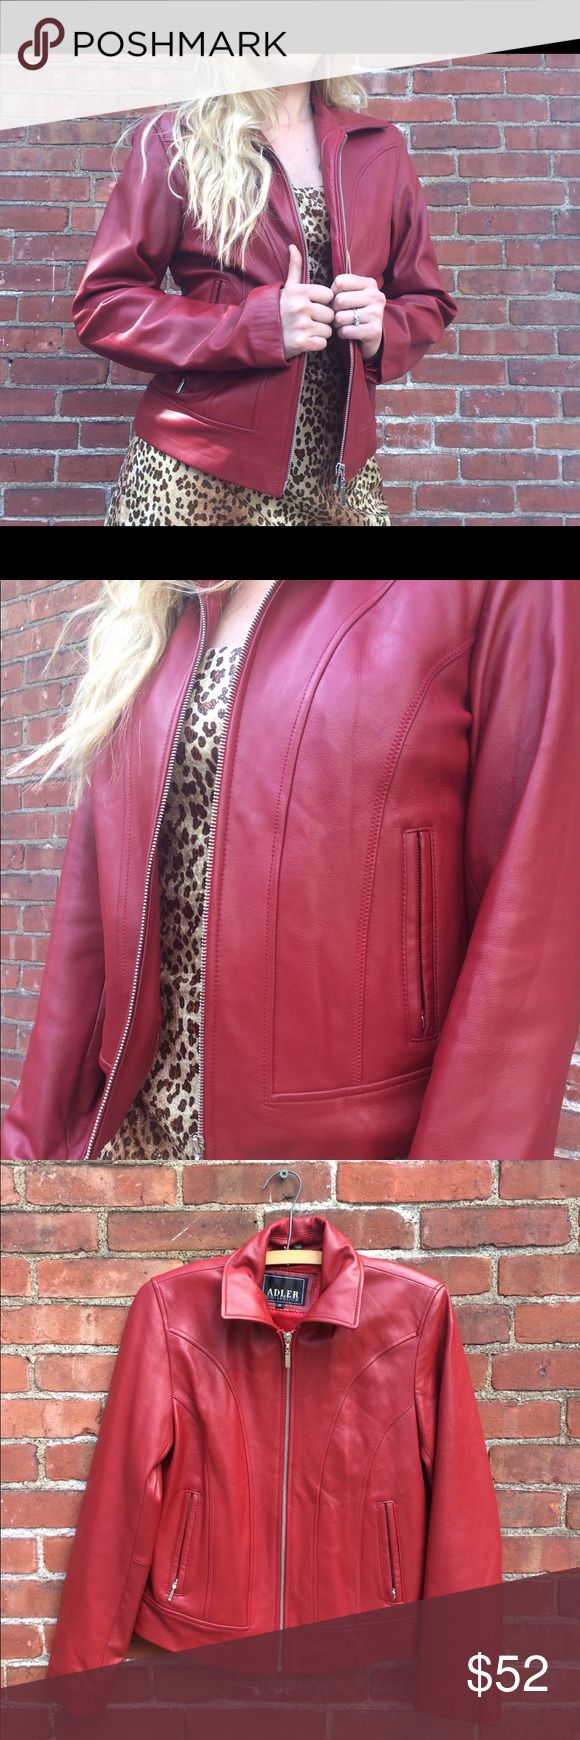 Vintage Red Leather Jacket Fantastic piece. Did you know Cuero is Leather in Spanish? Size small . The detail and lines are amazing for the fit. Measurements are: 21 inches long. 18 inches  pit to pit. Vintage Jackets & Coats